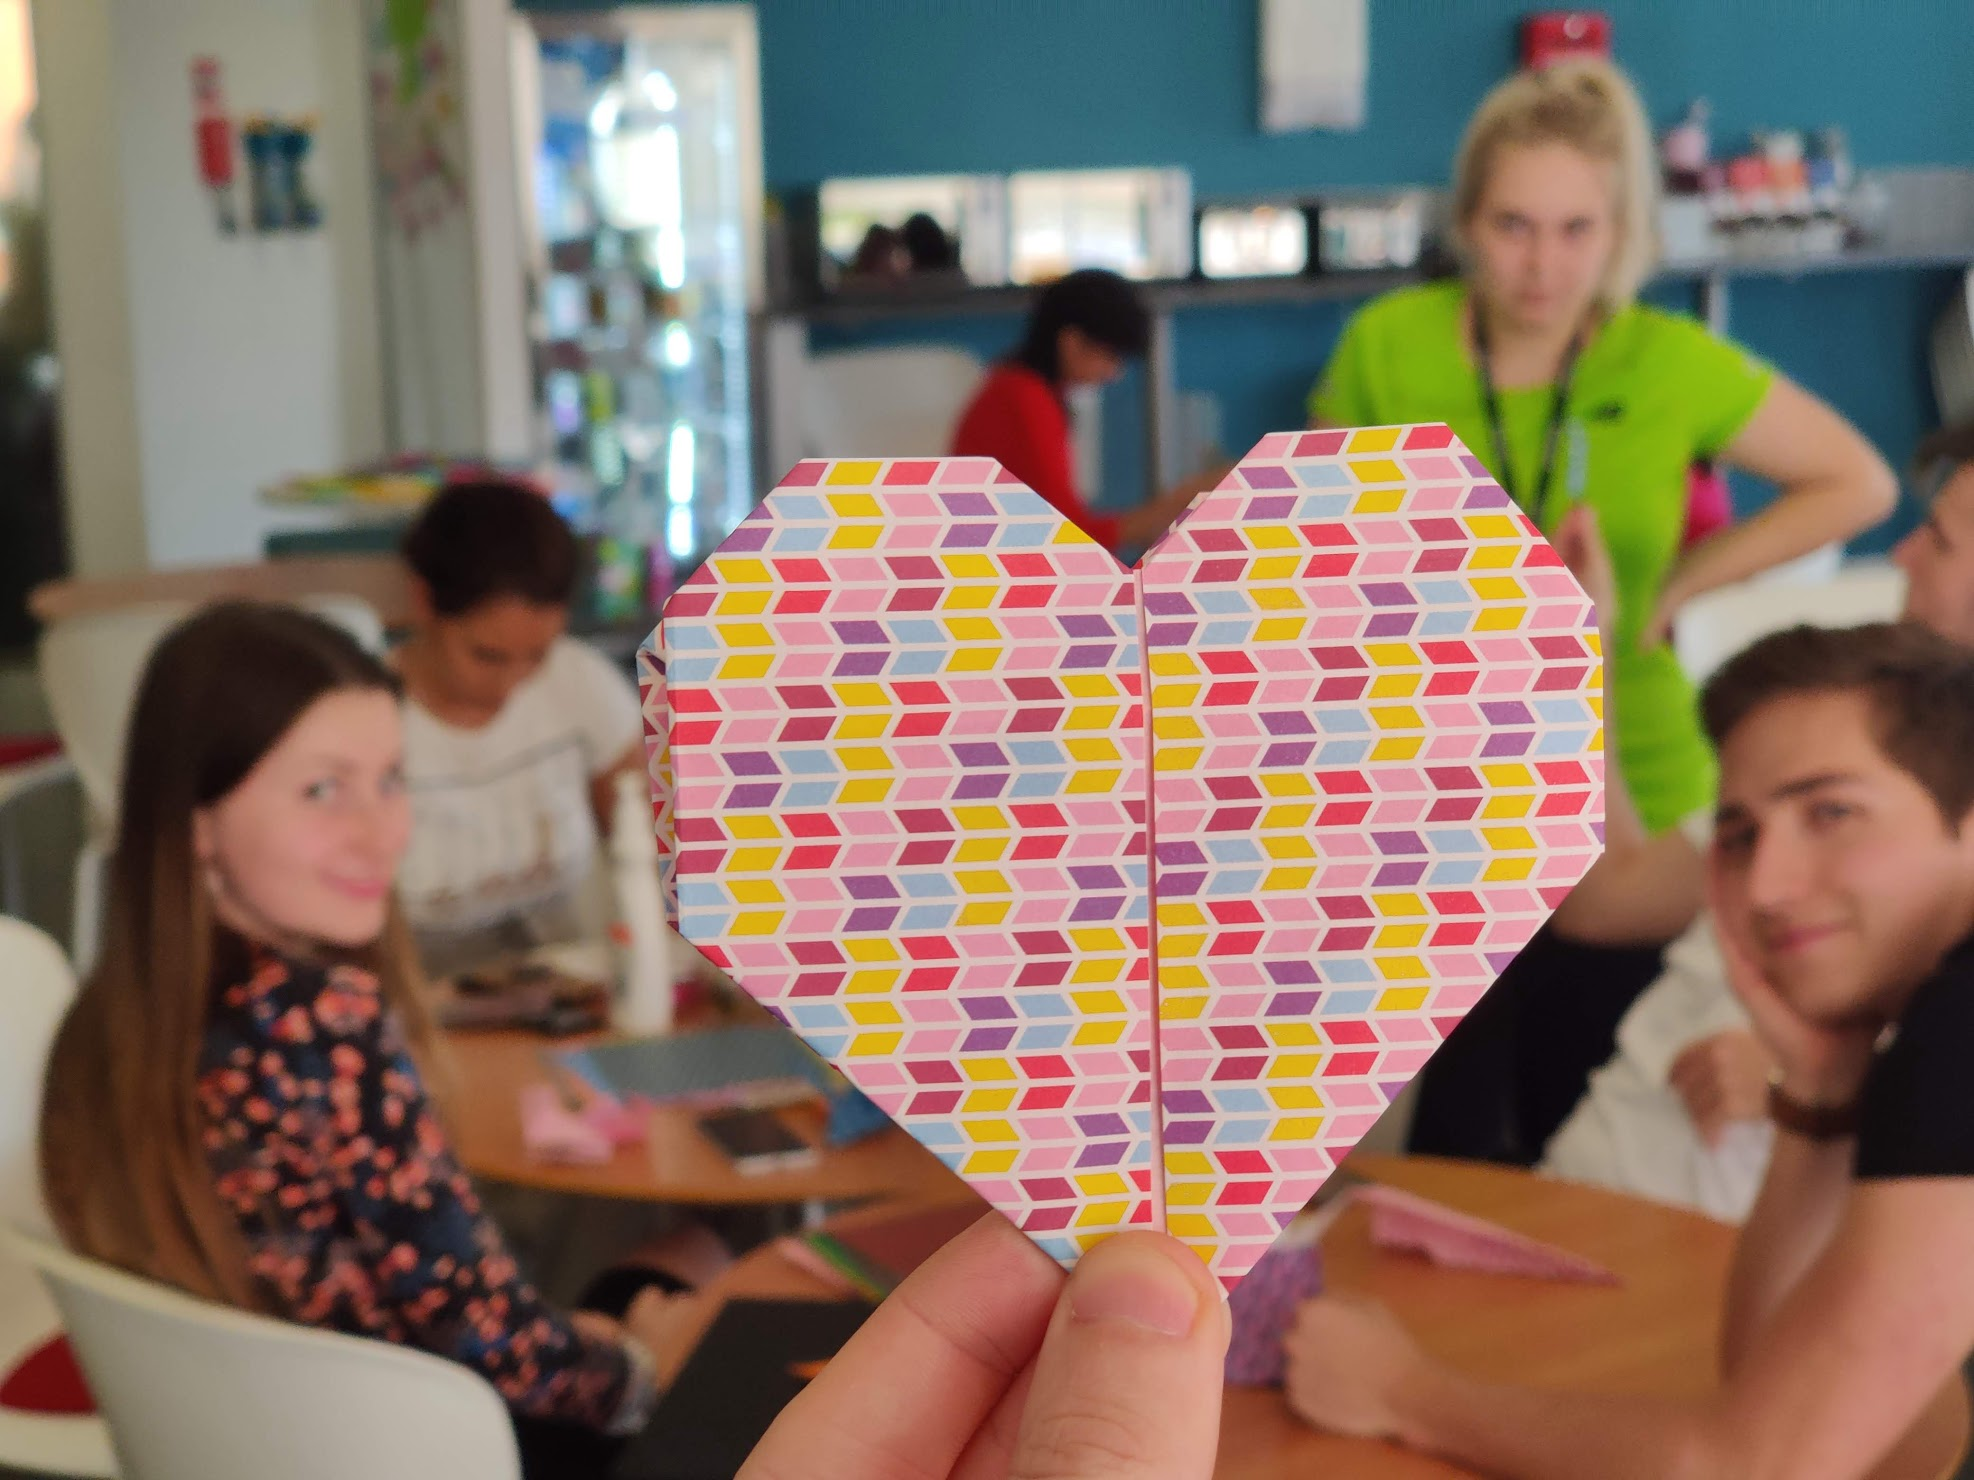 World Mental Health day activity featuring paper heart in foreground